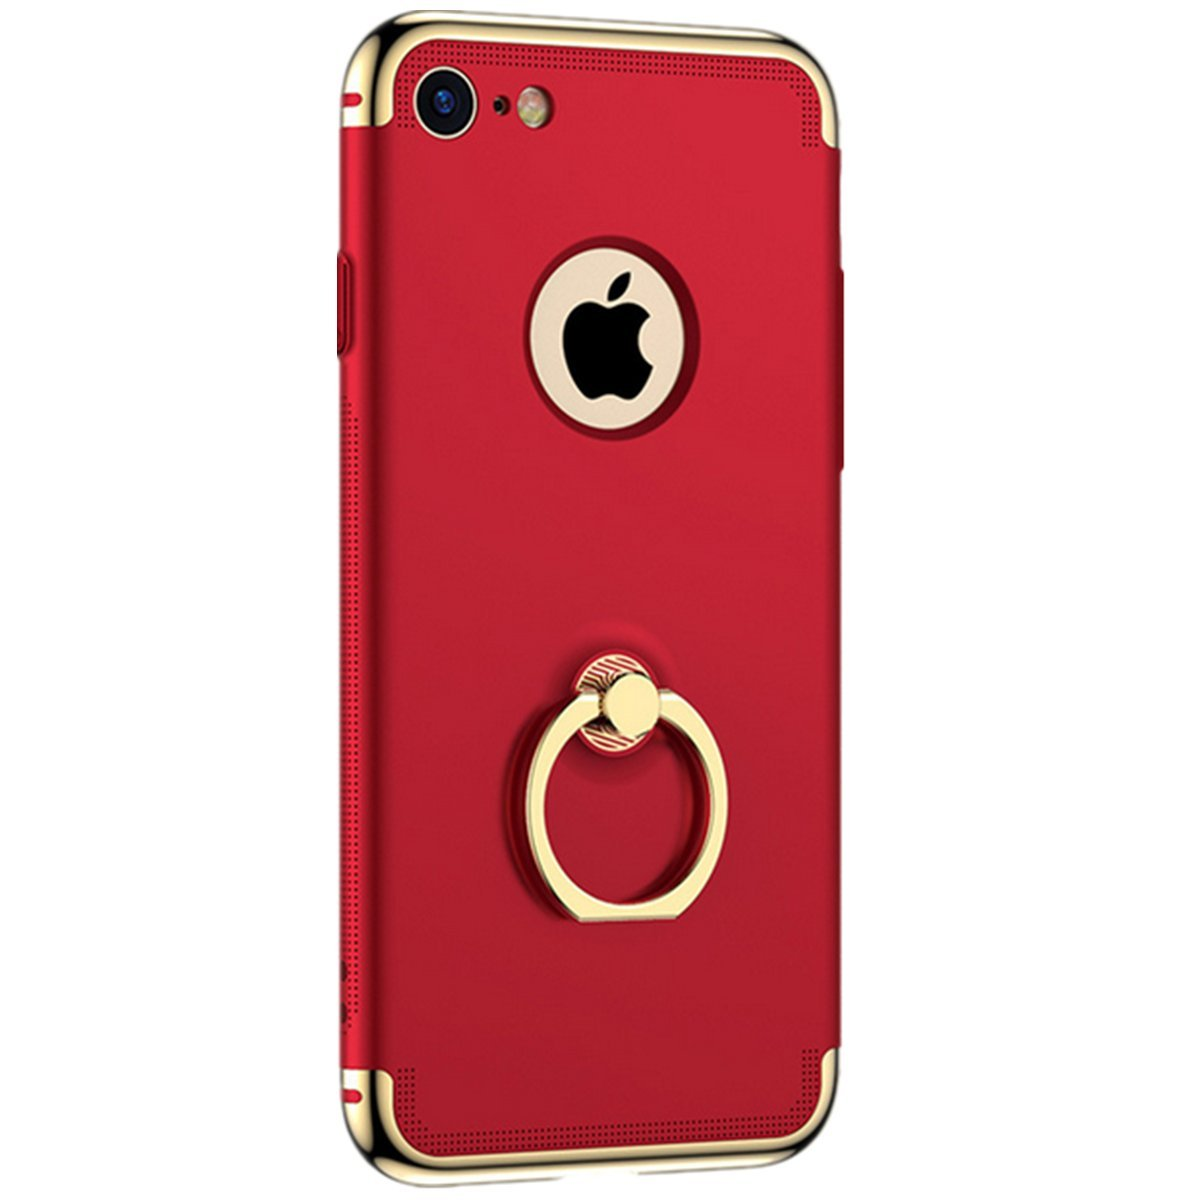 Mpei iPhone 6 Plus Case with Ring Holder Kickstand Function, Matte Coated Surface with Electroplate Frame Hard Cover for Apple iPhone 6s Plus (iPhone 6 6S Plus, Red)